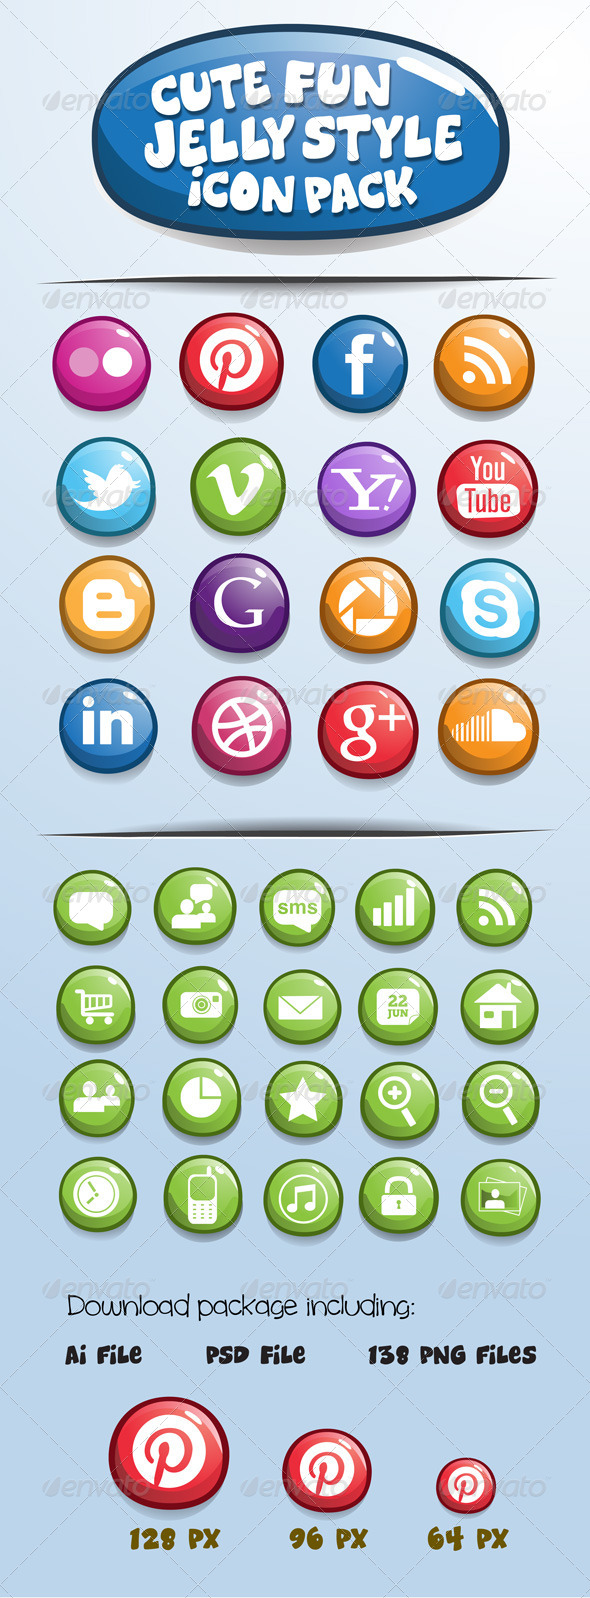 GraphicRiver Jelly Style Icon Pack 4819261